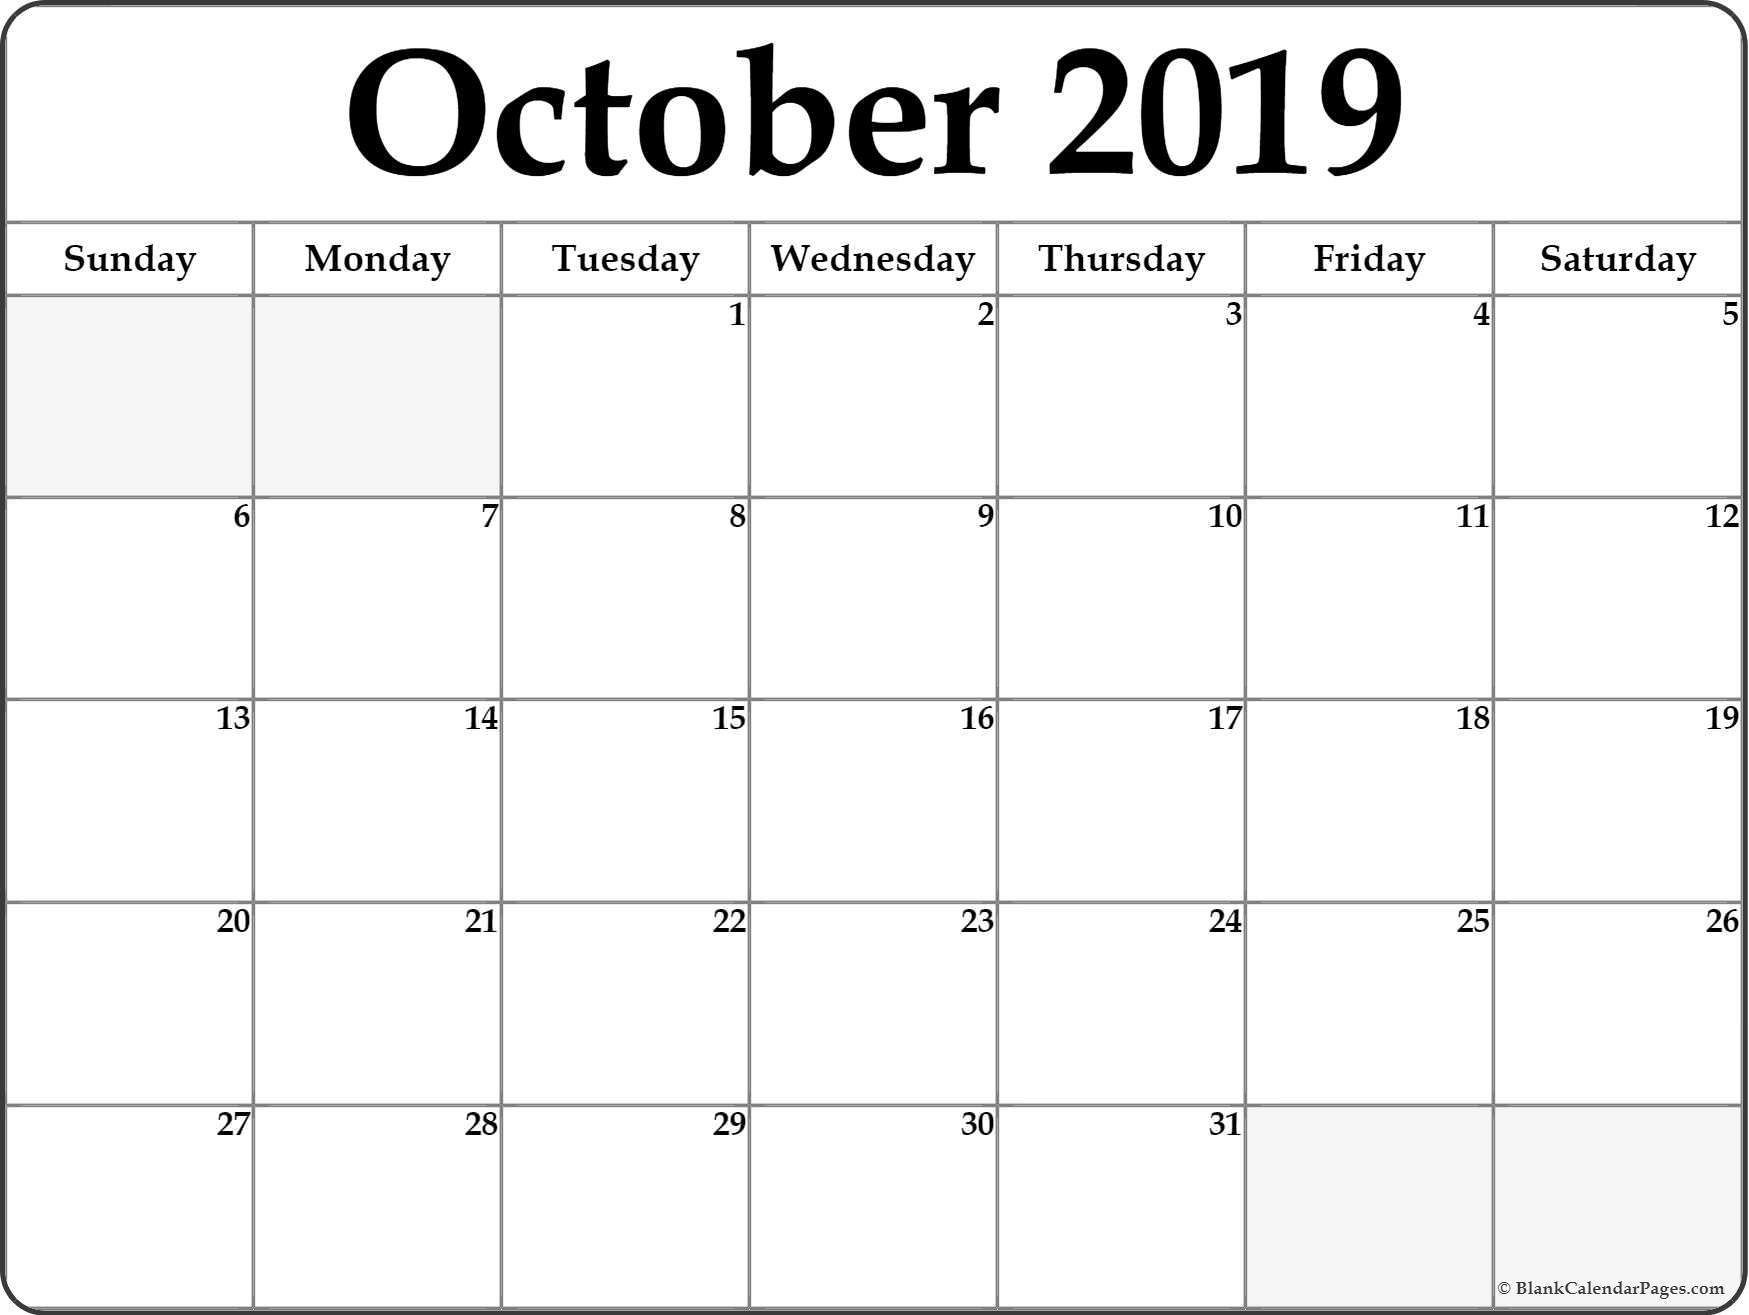 October 2019 Calendar | Free Printable Monthly Calendars